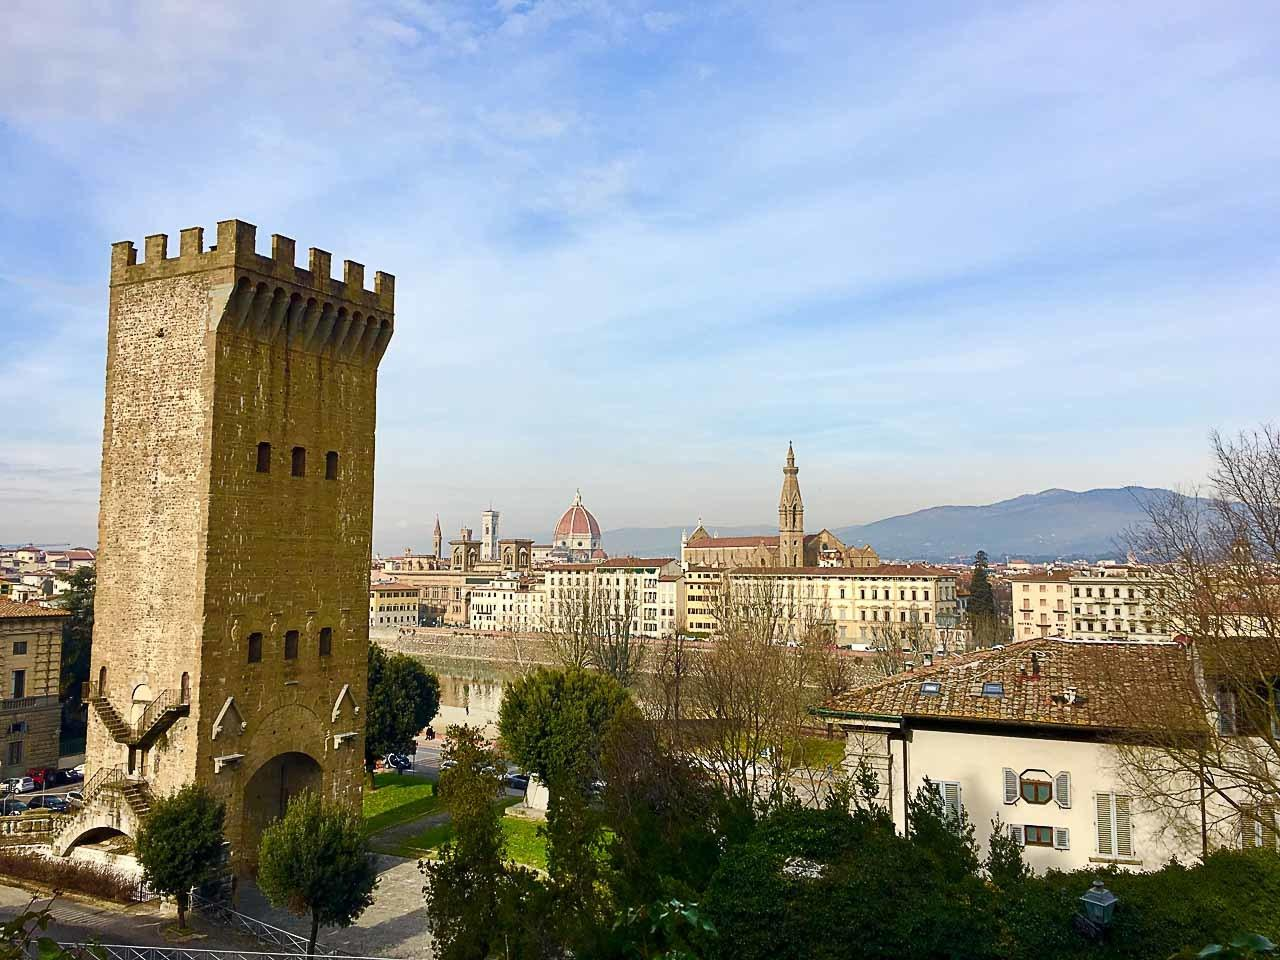 24 Hours in Florence: What to See, Eat and Where to Stay - Love & Road